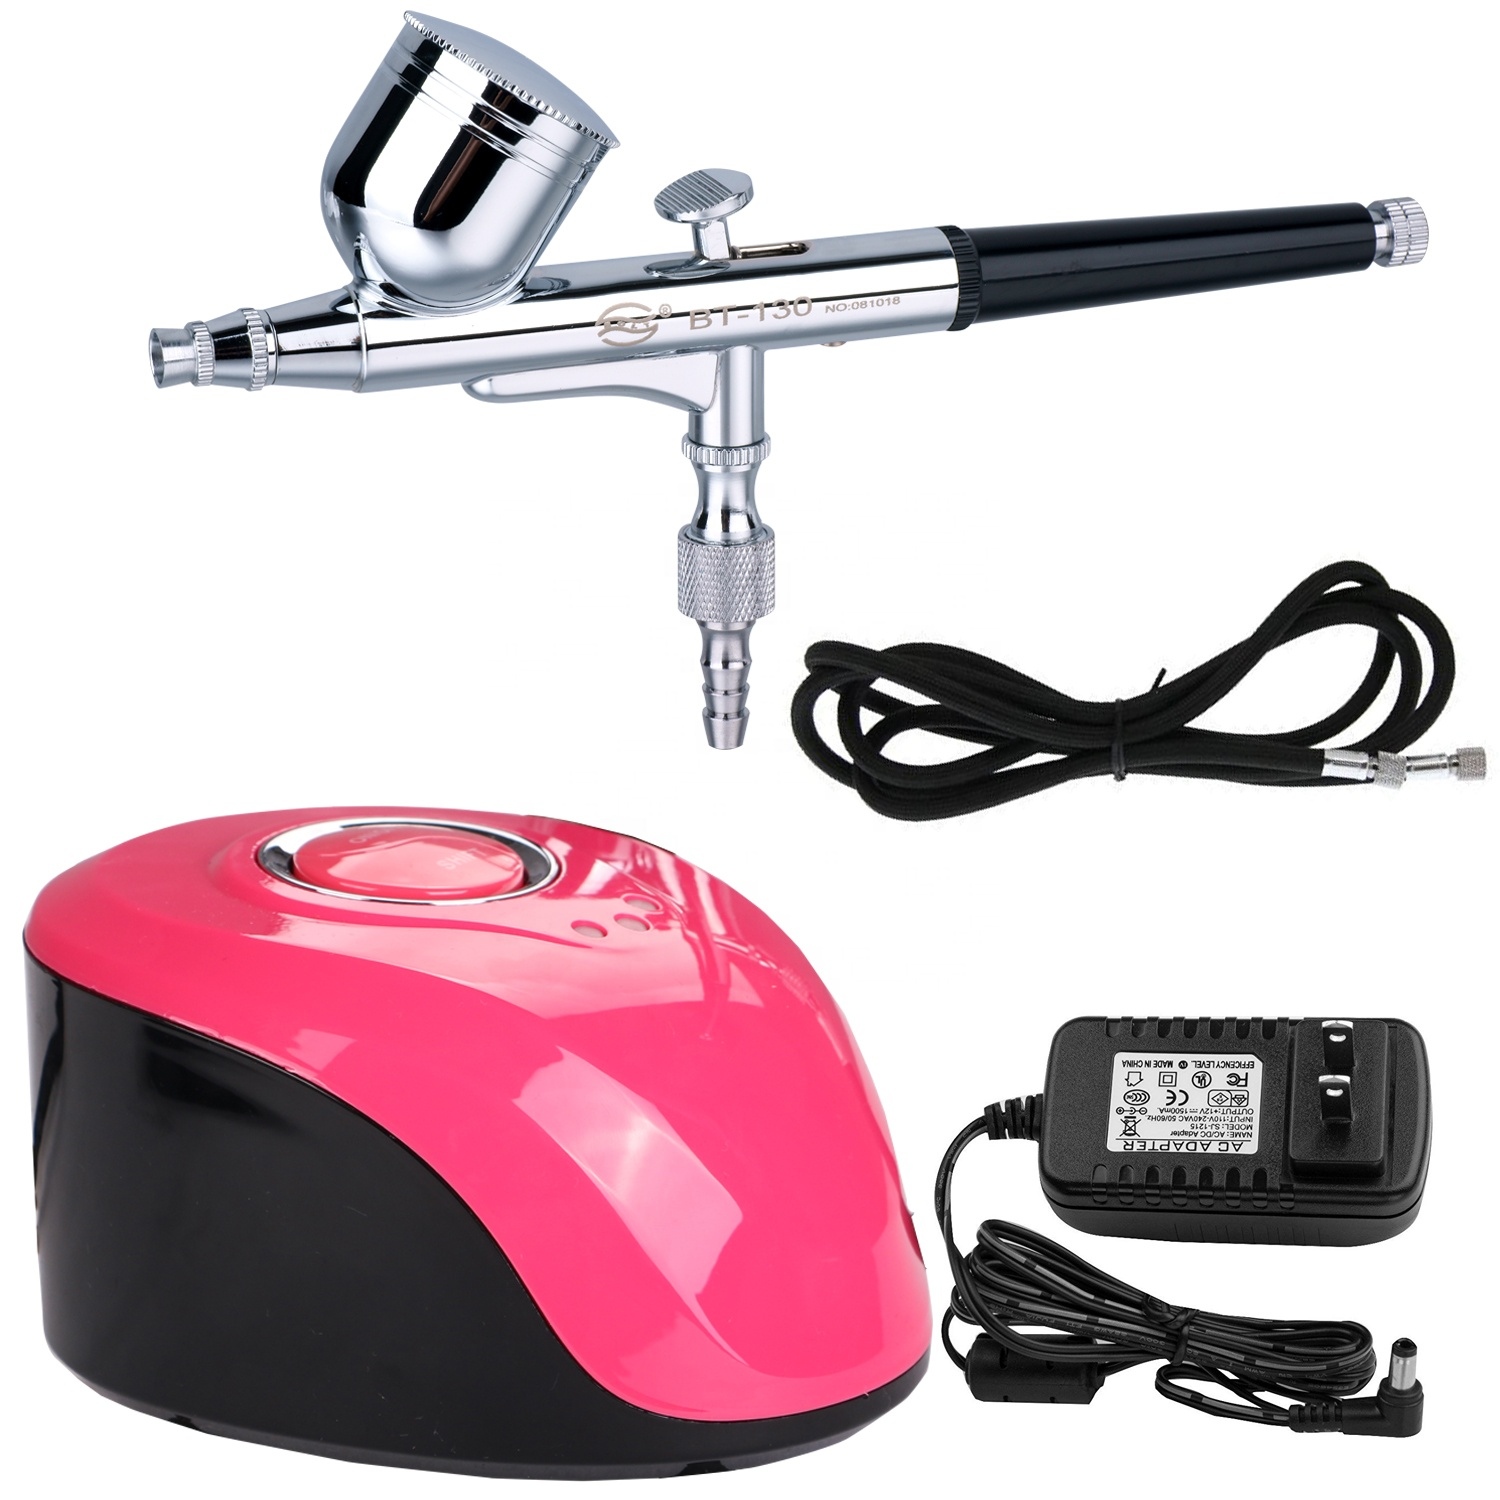 Air Brushing Machine Body Art Tattoo Nail Painting Mini Spray Makeup Gun Kit Air Brush set Featured Image